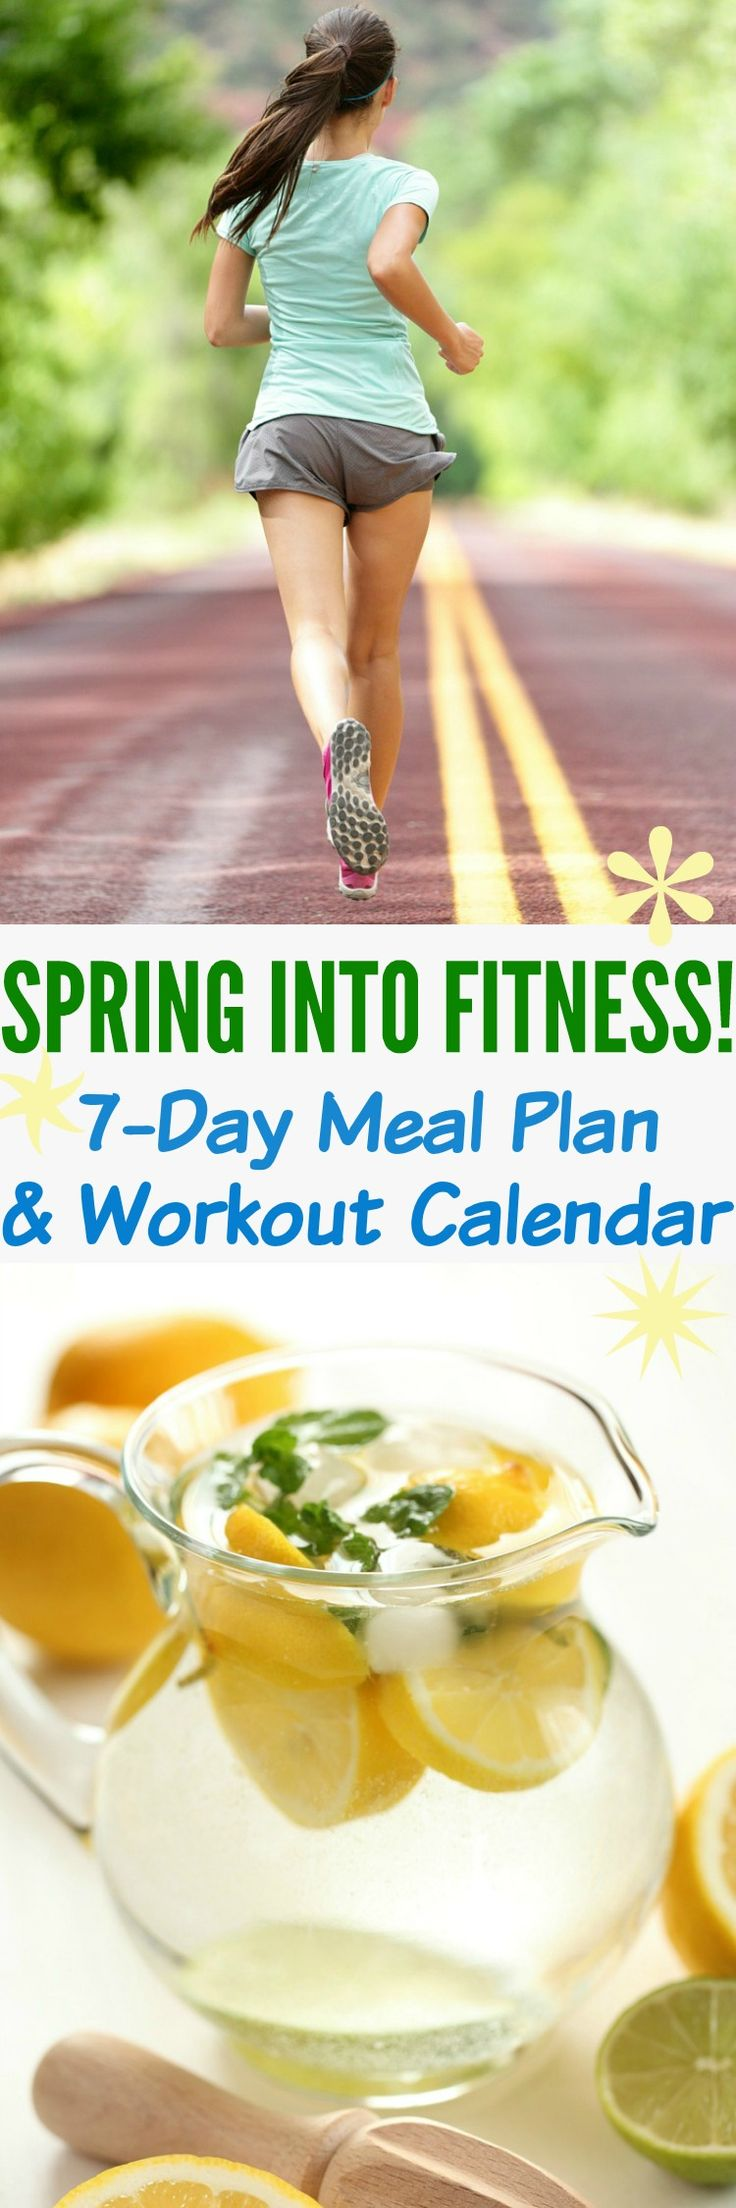 This 7-Day Clean Eating Meal Plan and Workout Calendar is the jump-start that you need to get back into the exercise and healthy living routine!